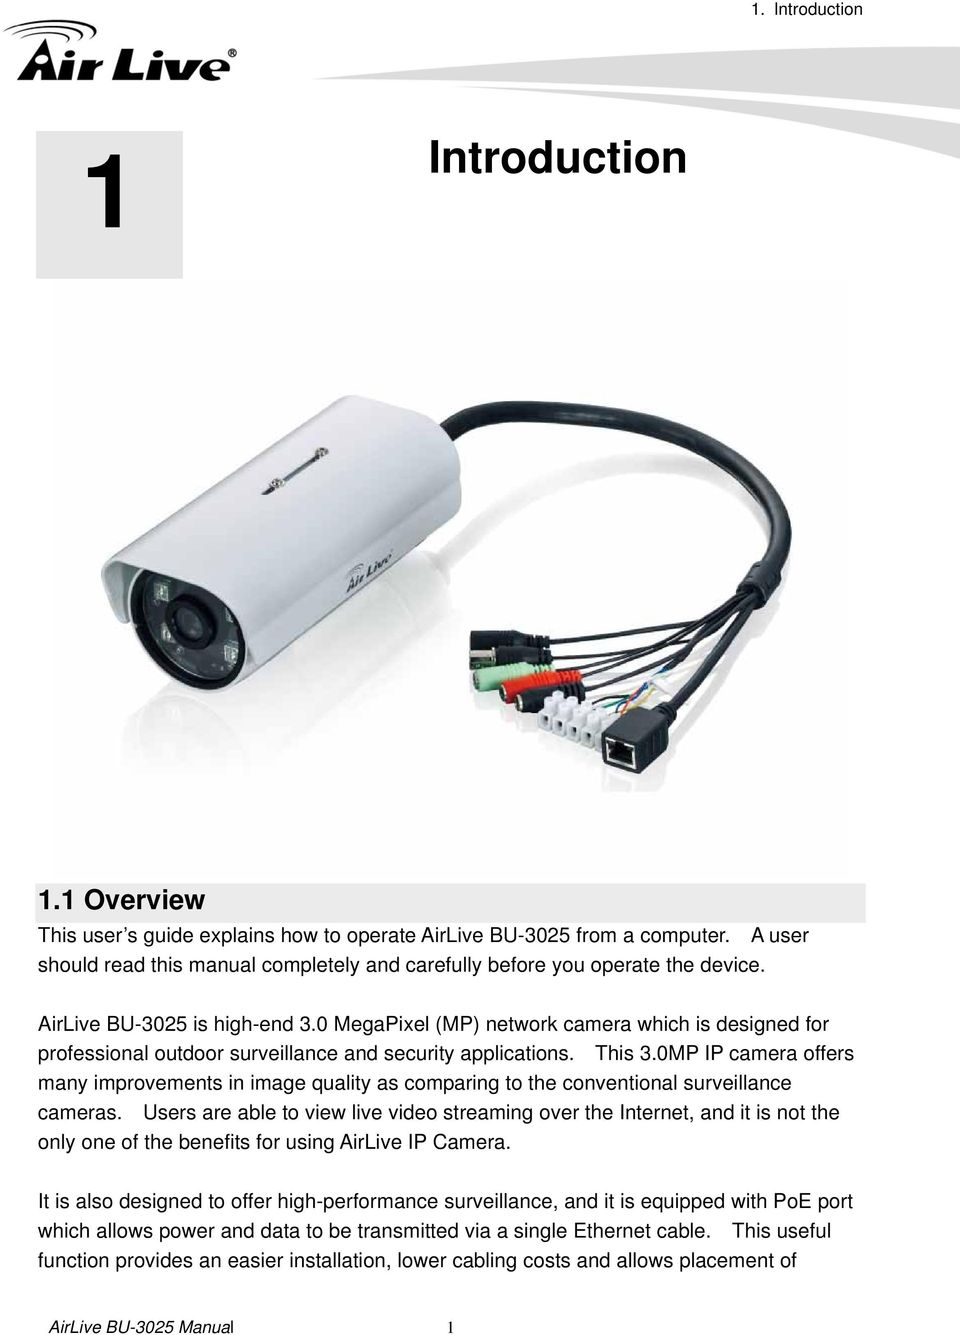 0 MegaPixel (MP) network camera which is designed for professional outdoor surveillance and security applications. This 3.